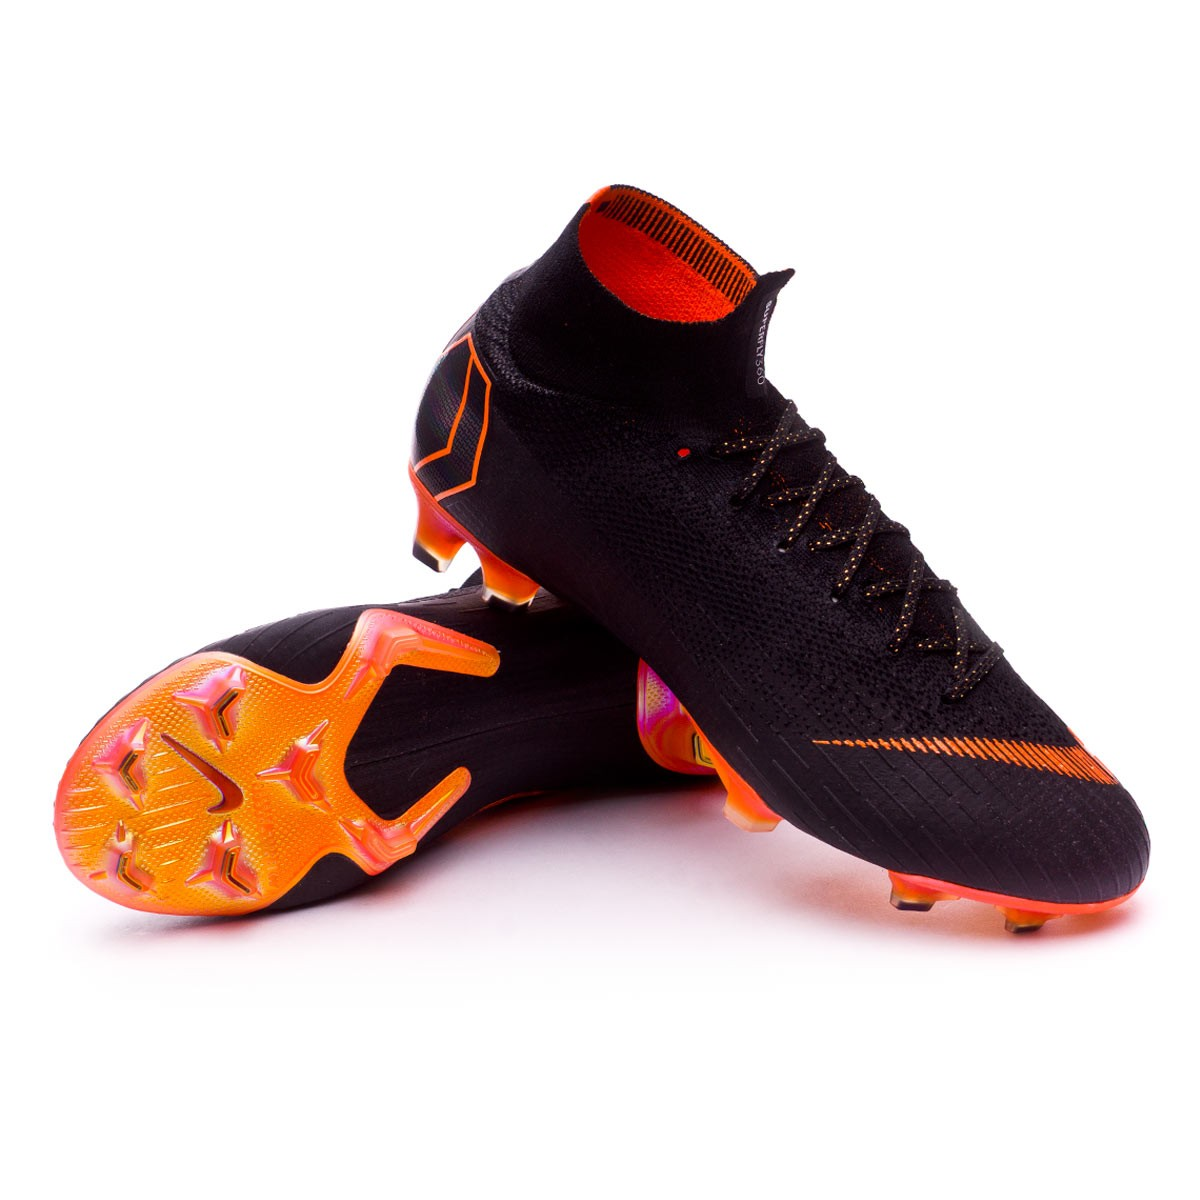 092364cd02c2 Football Boots Nike Mercurial Superfly VI Elite FG Black-Total orange-White  - Tienda de fútbol Fútbol Emotion